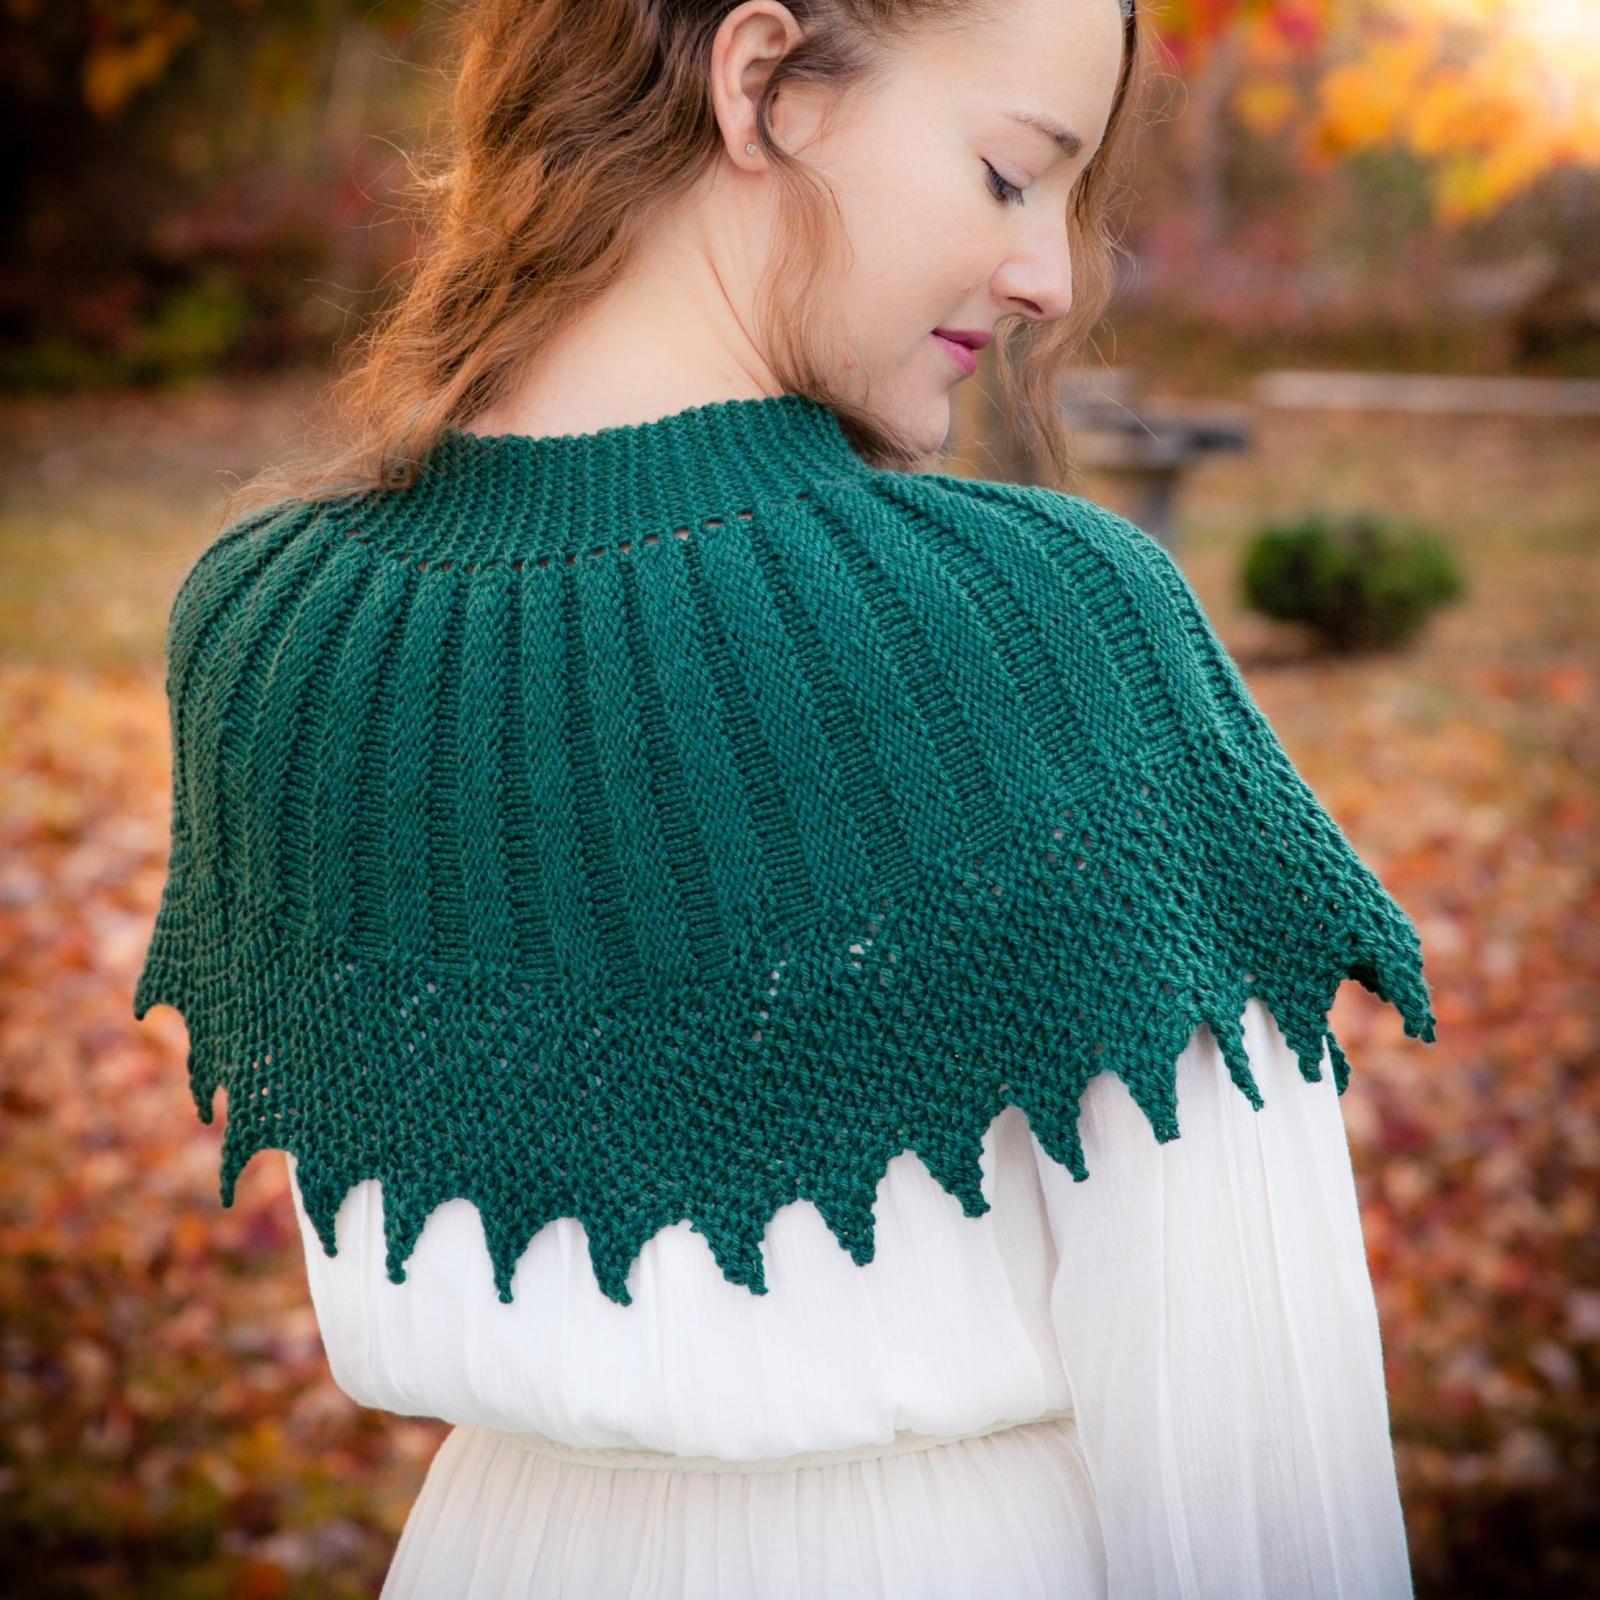 Knitting Patterns For Ponchos And Shawls : Loom Knit Cape Pattern This Moment is Good